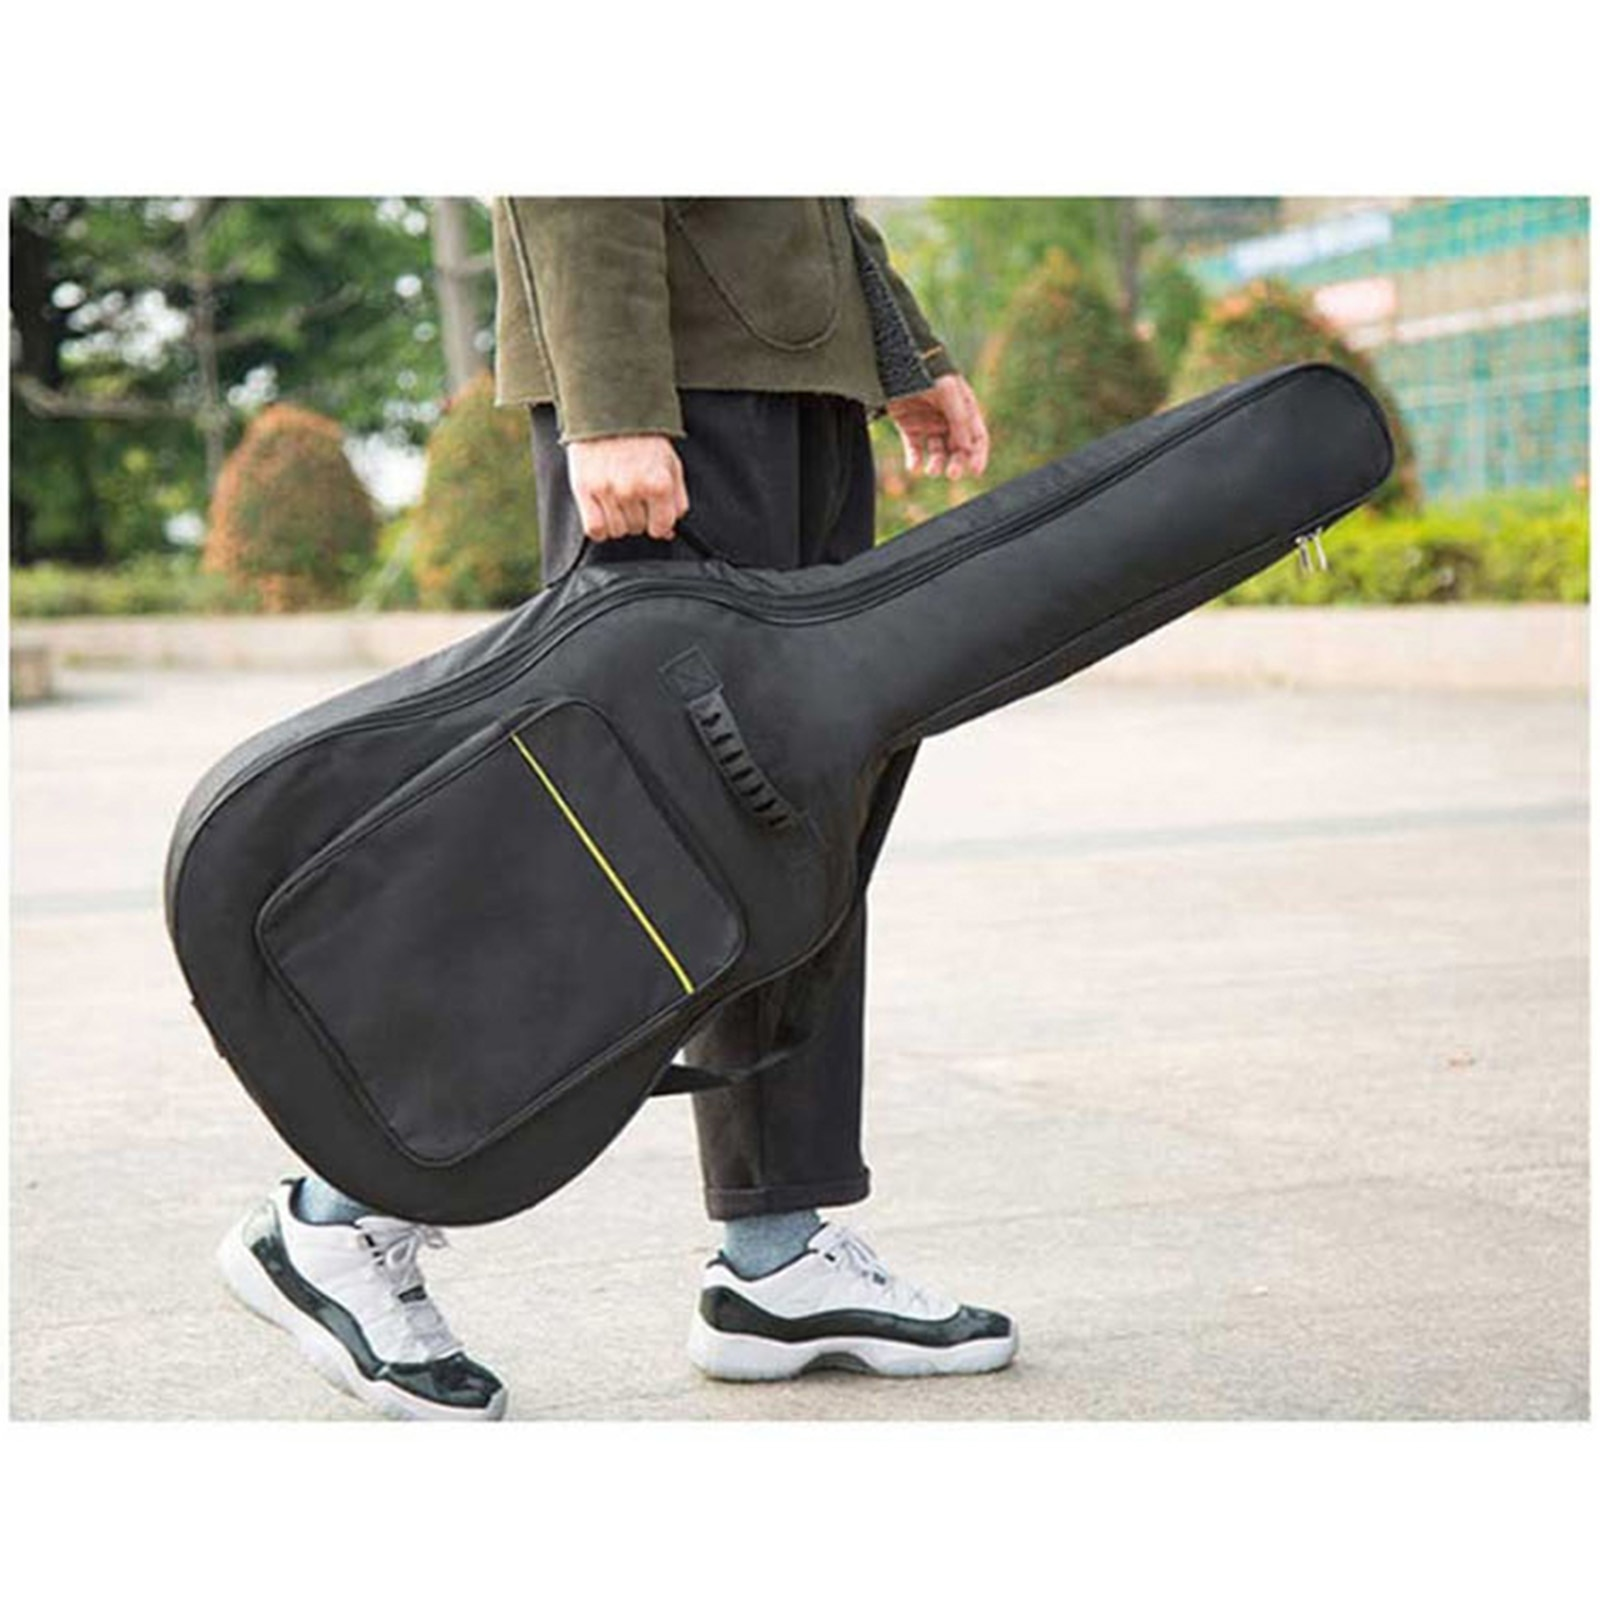 39'' Guitar Gig Case Shoulder Bags Backpack Hand Bag with Adjustable Straps trumpet gig bag box case backpack 600d water resistant oxford cloth with adjustable dual shoulder strap new arrival